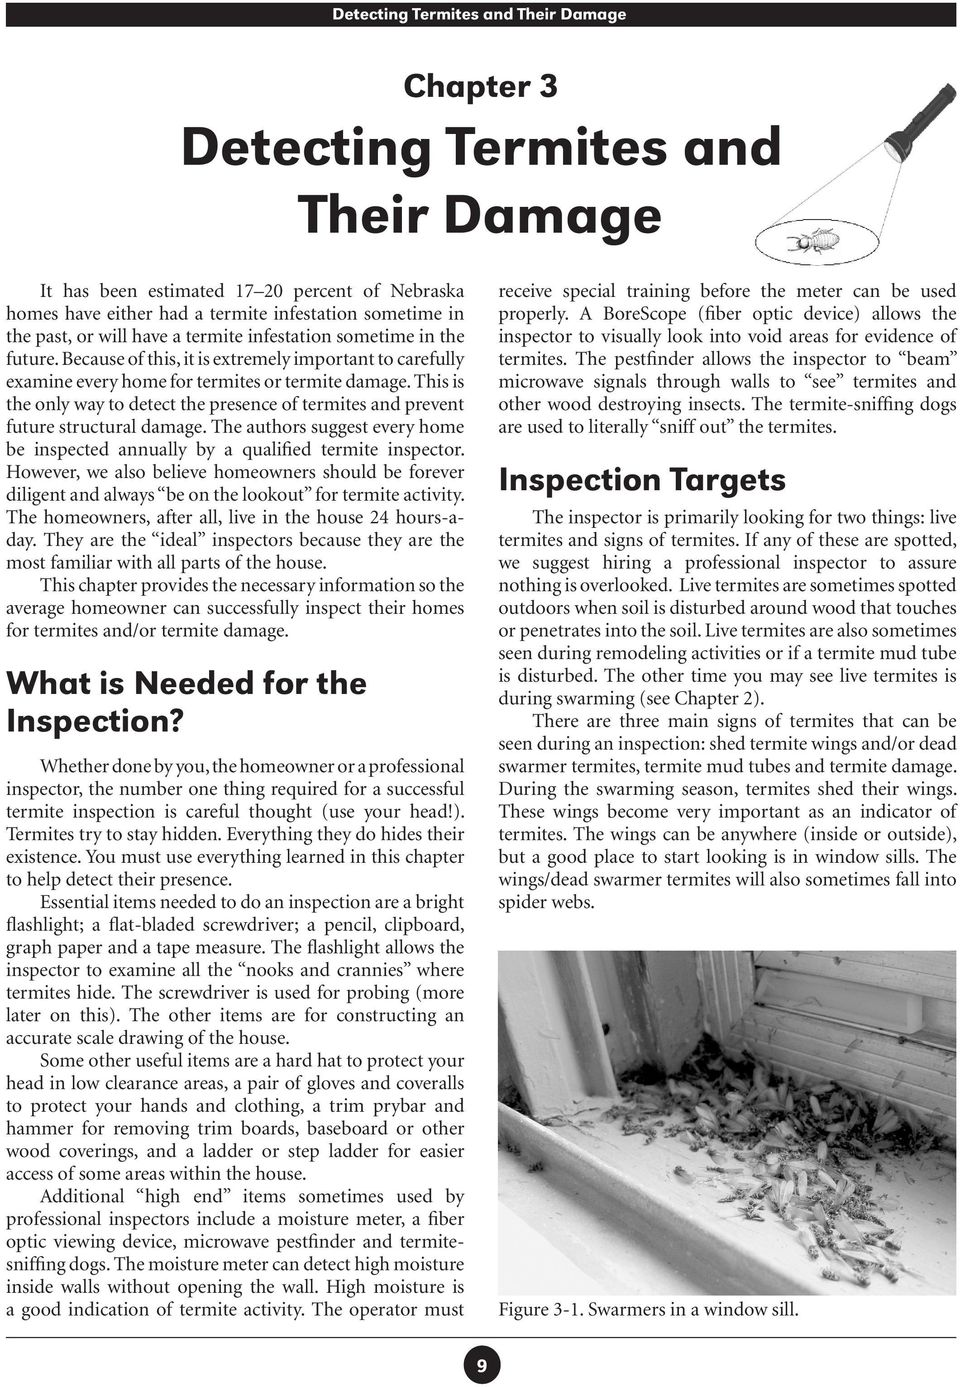 This is the only way to detect the presence of termites and prevent future structural damage. The authors suggest every home be inspected annually by a qualified termite inspector.